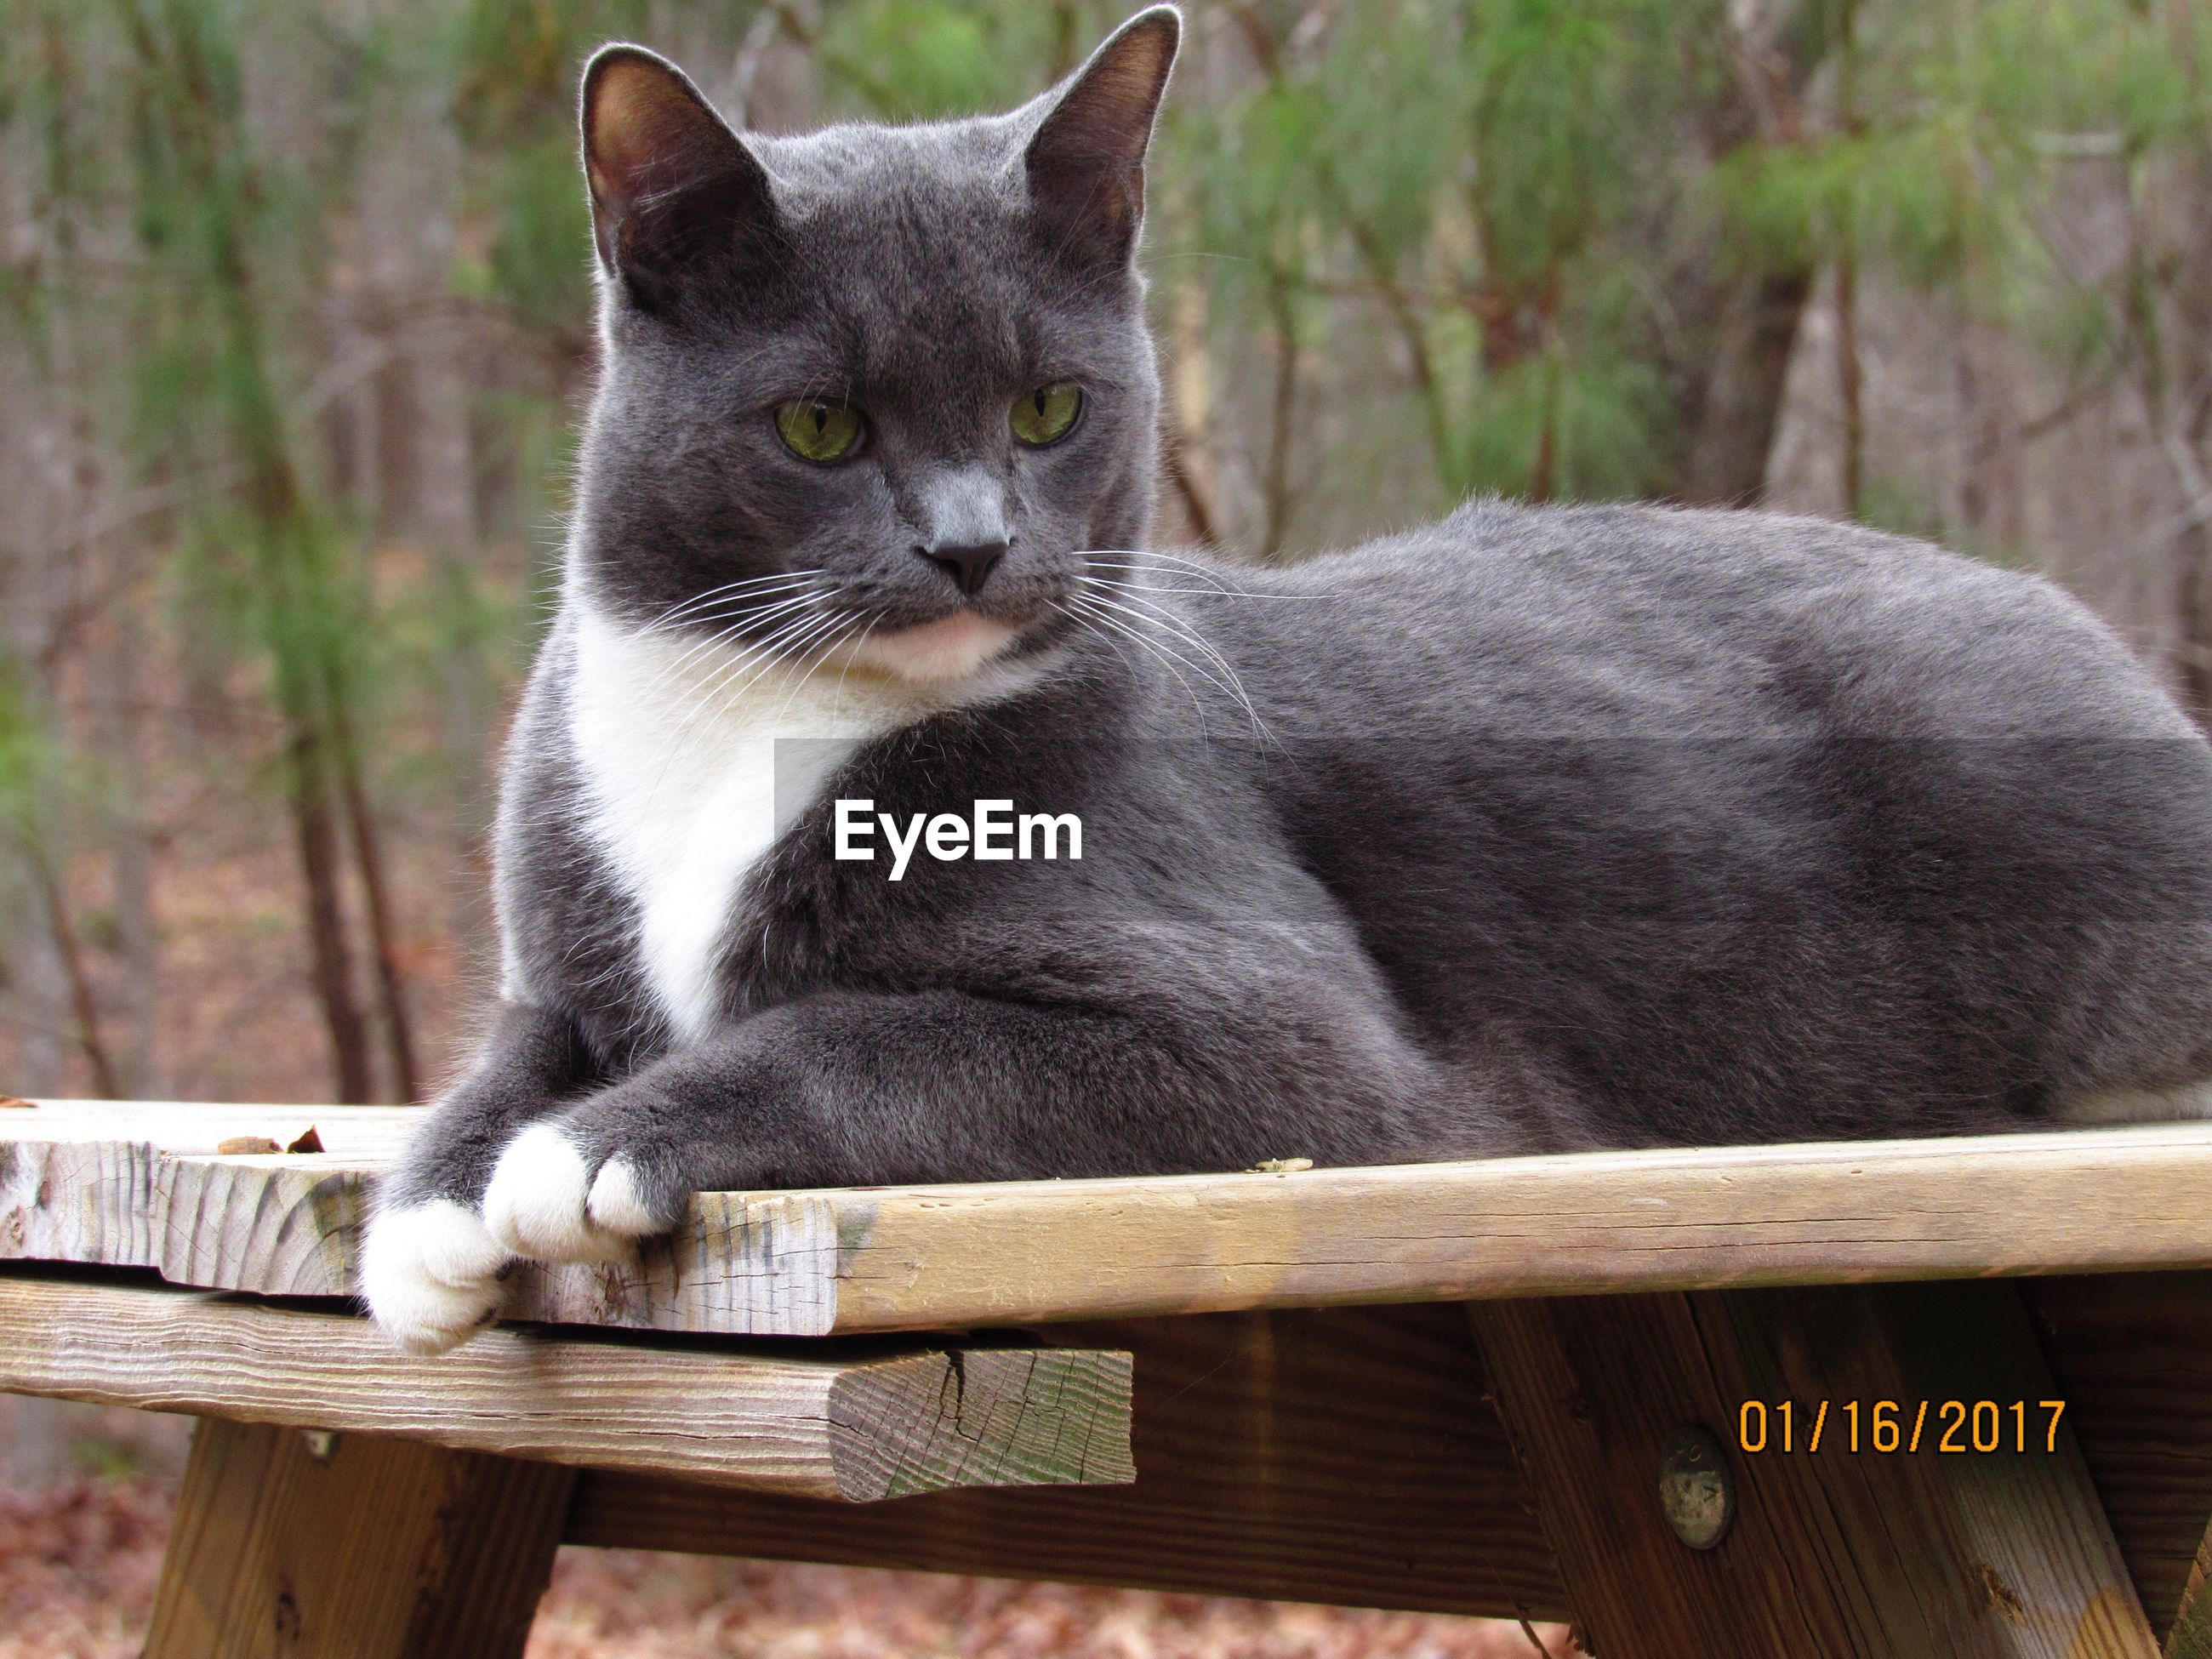 domestic cat, animal themes, one animal, domestic animals, pets, feline, wood - material, mammal, focus on foreground, day, no people, whisker, looking at camera, portrait, sitting, outdoors, close-up, nature